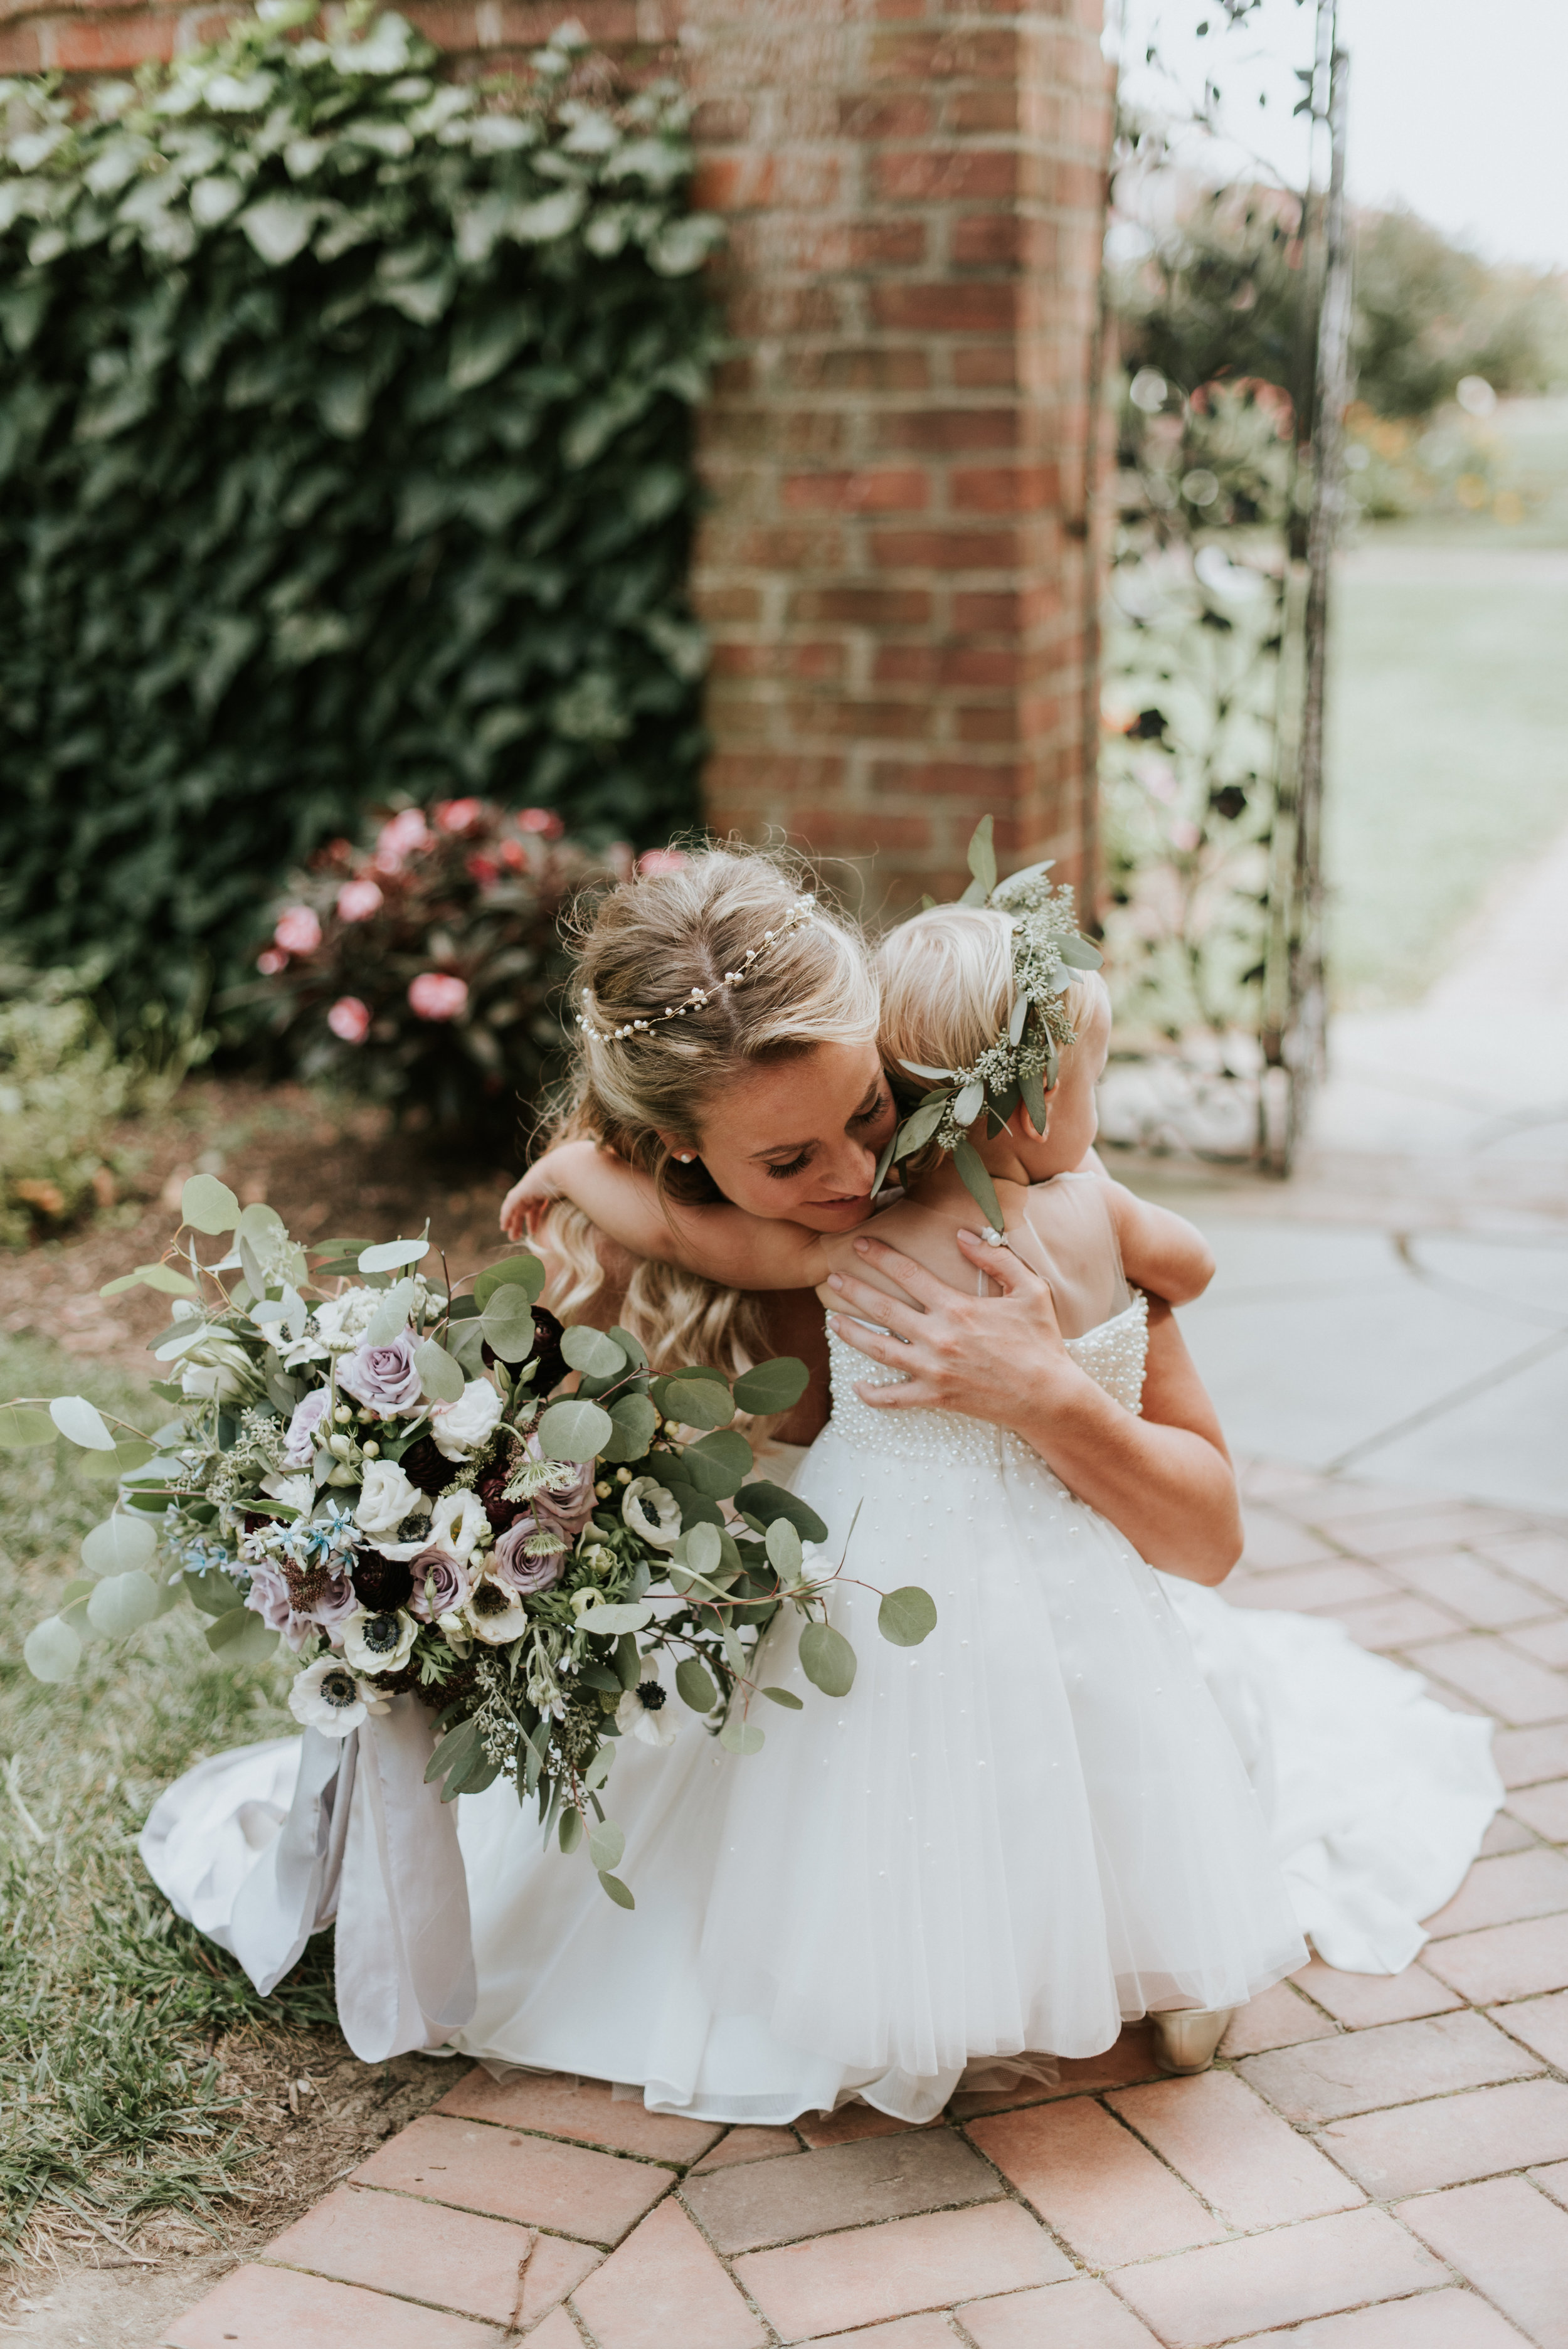 Rustic Oyster Themed Eastern Shore Maryland Outdoor Wedding by East Made Event Company Wedding Planner and Bekah Kay Creative372.jpg